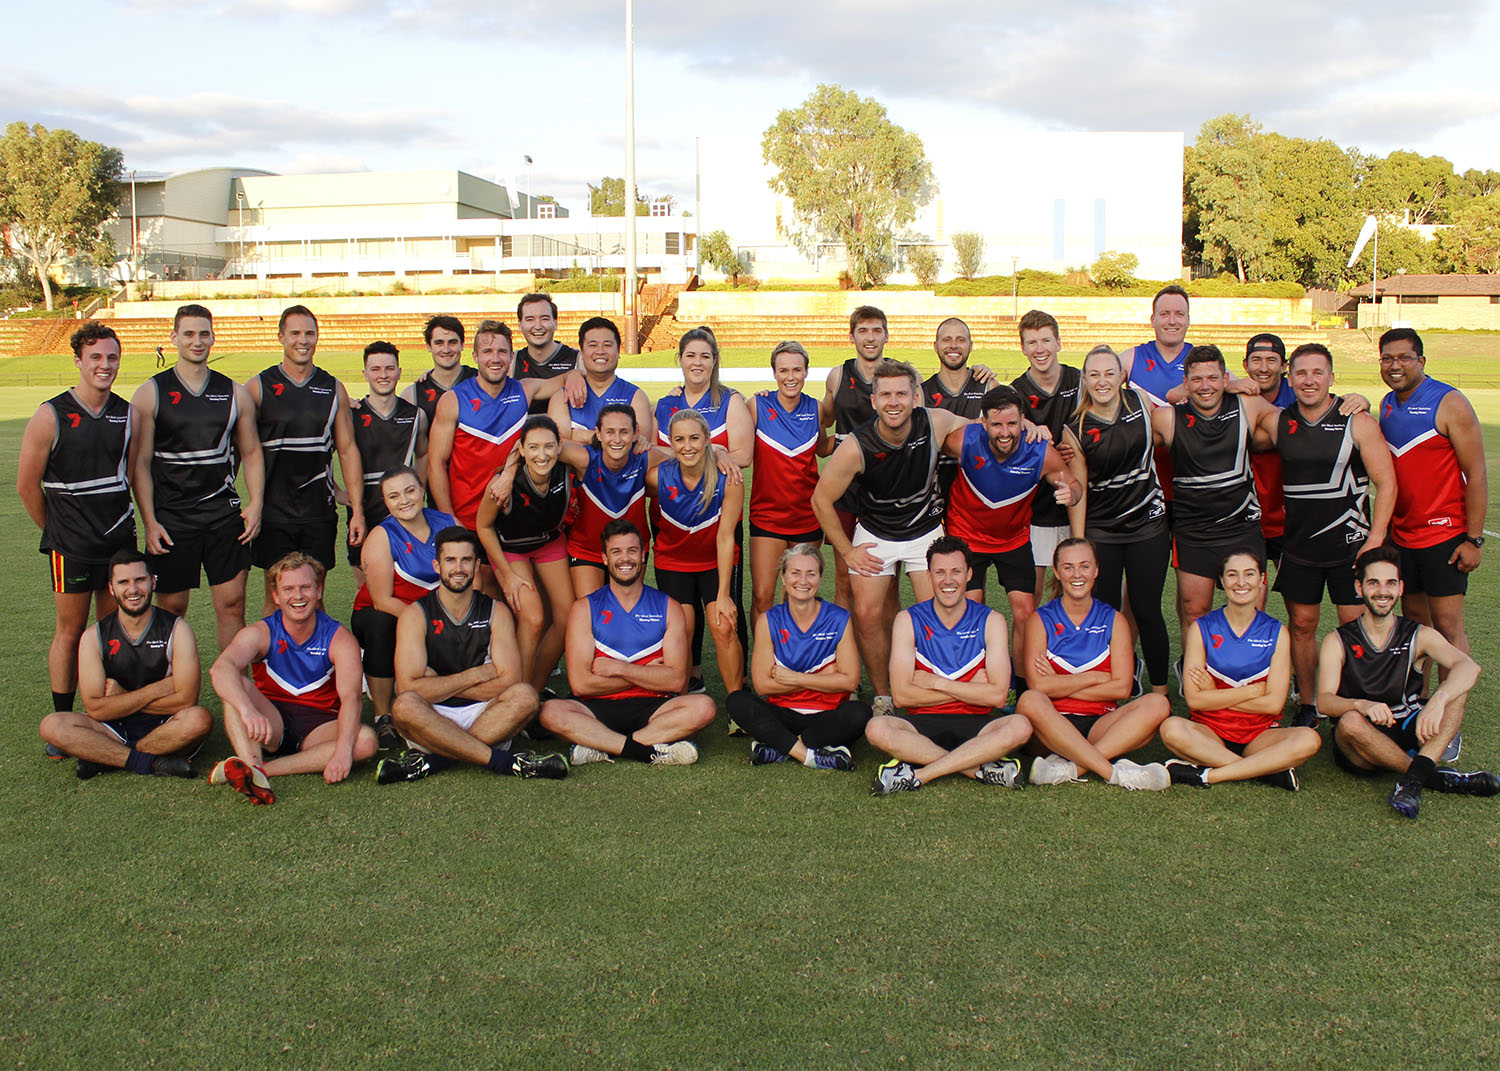 Advertising All Stars take the trophy again in the second annual Seven West Media AFL Challenge